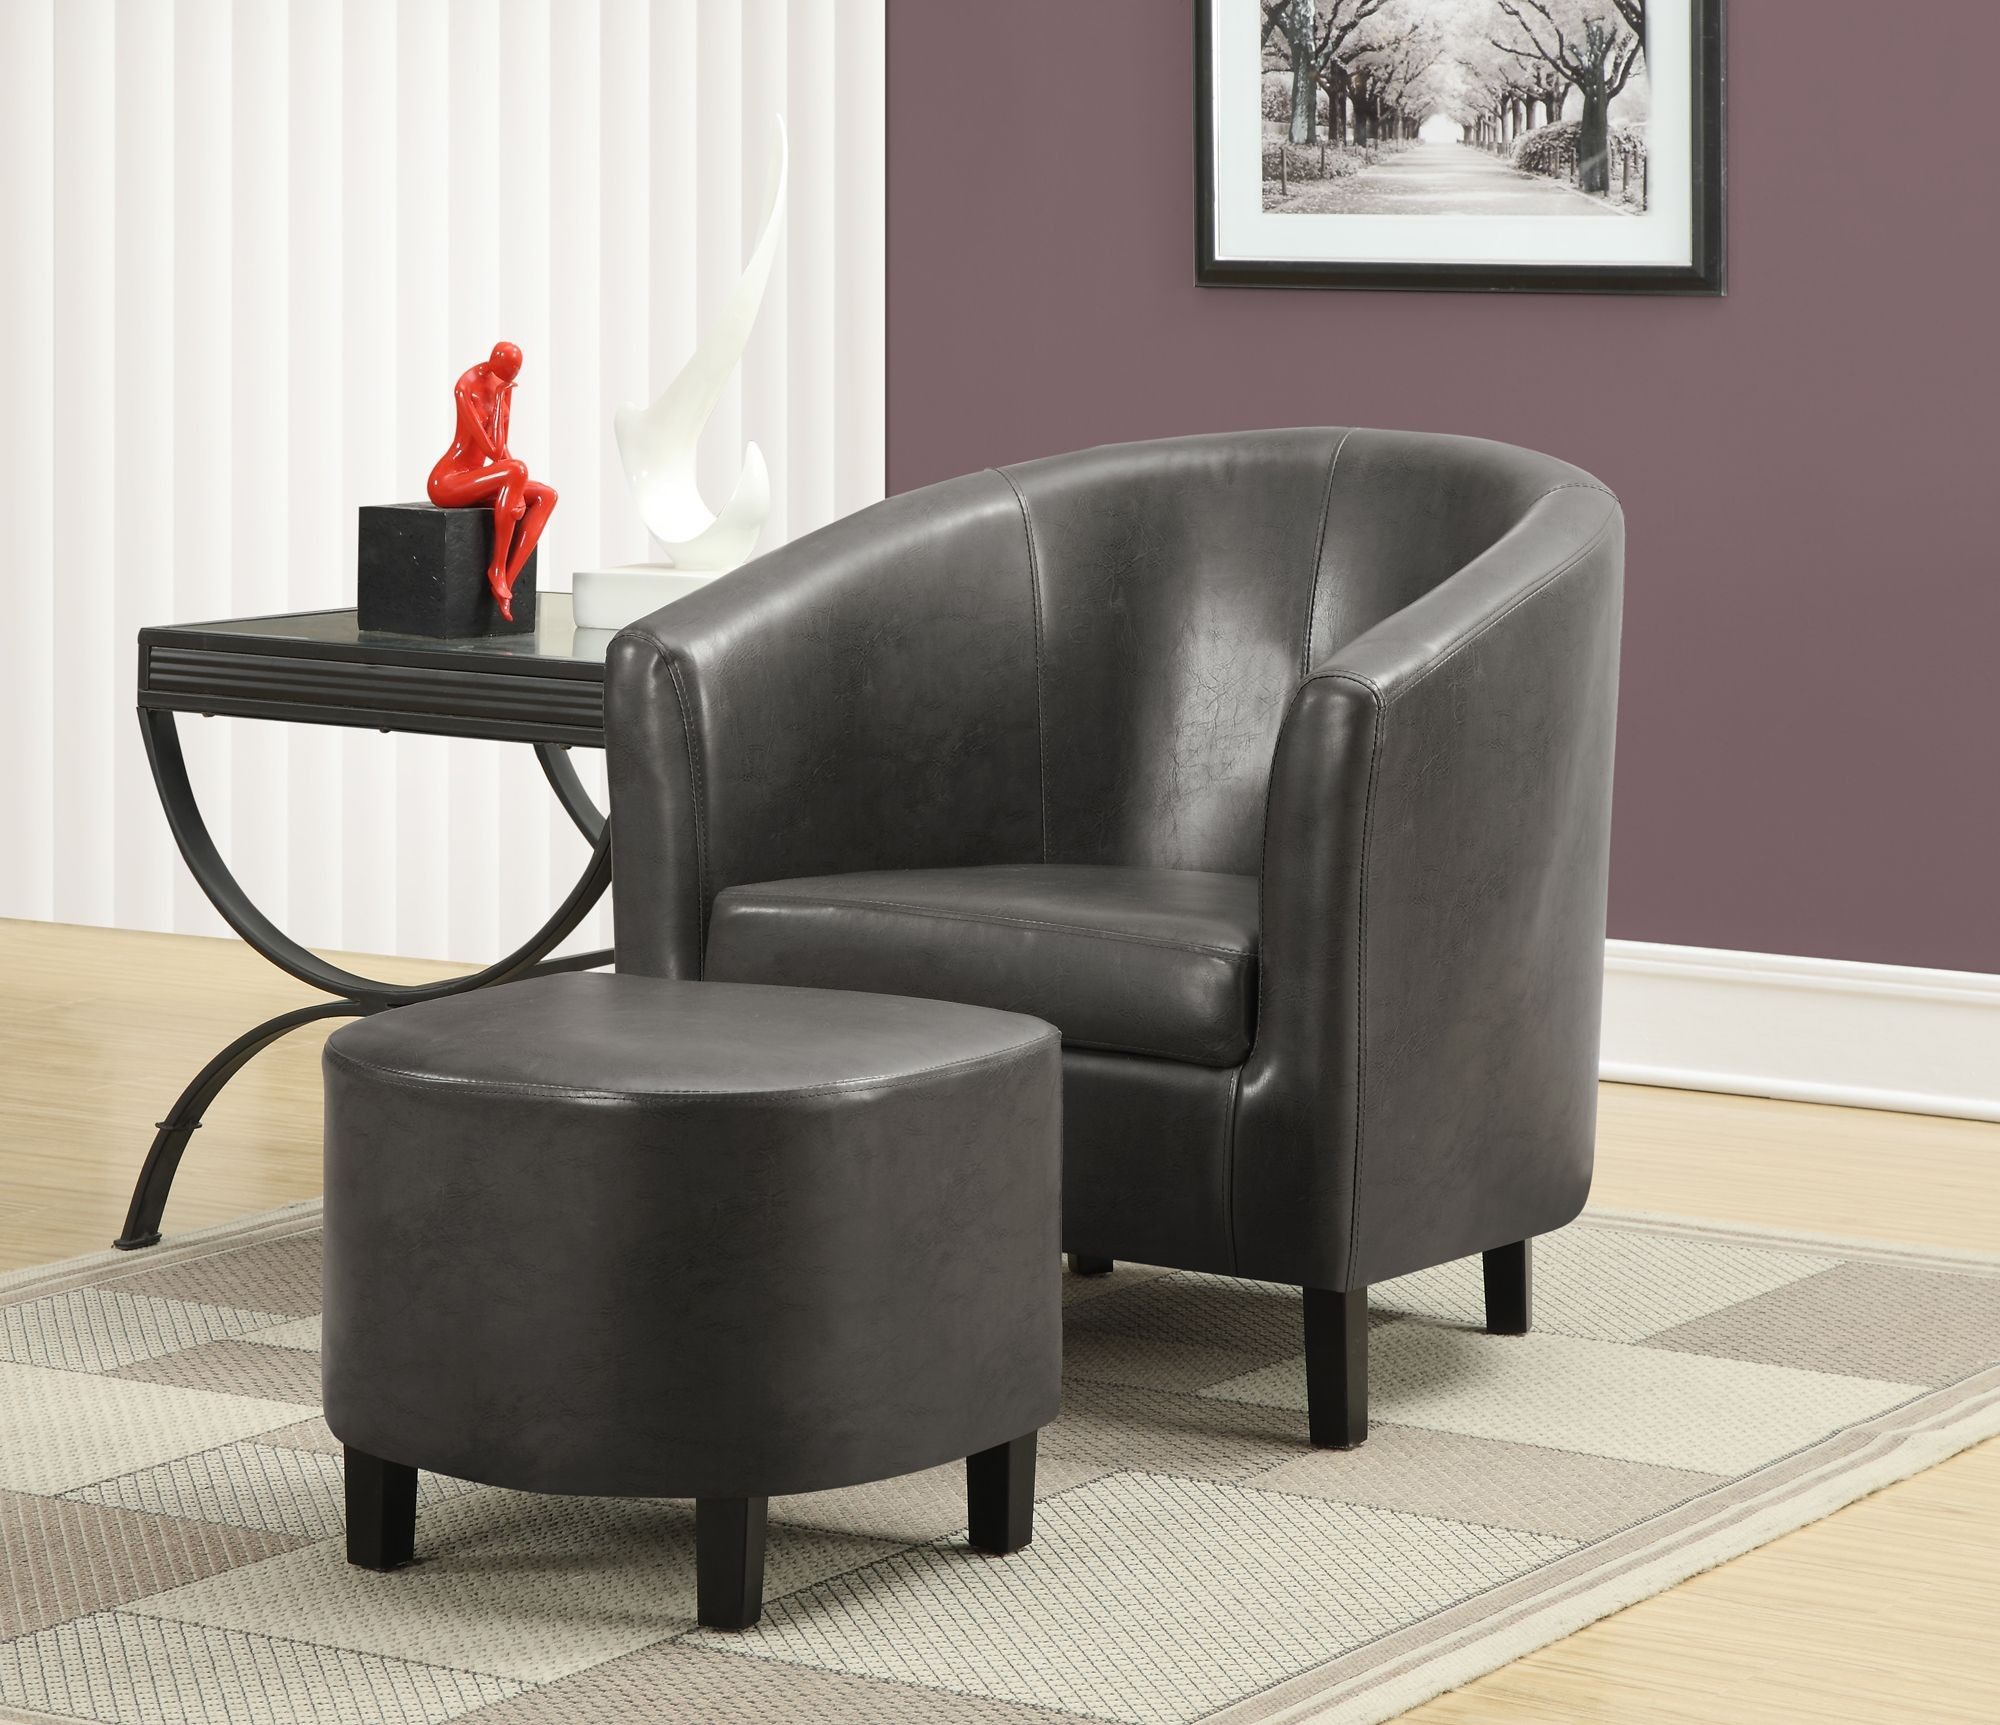 Charcoal Gray Accent Chair With Ottoman From Monarch 8054